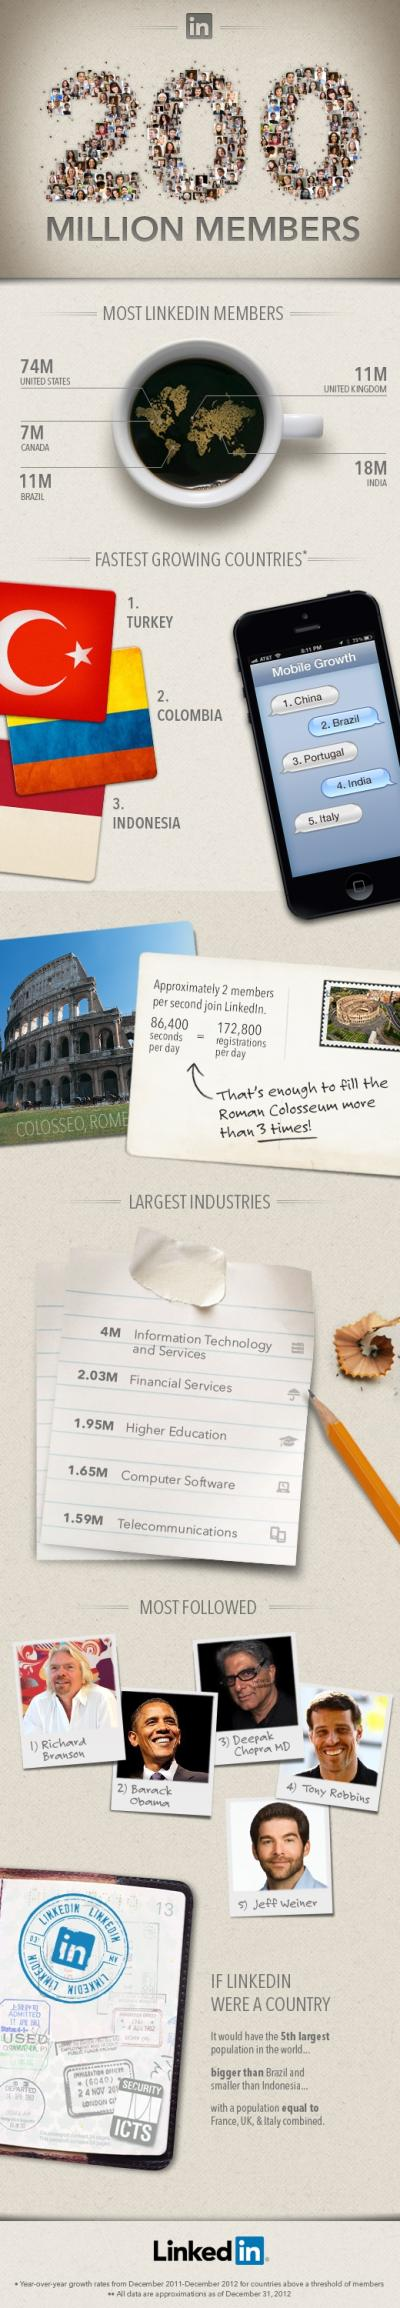 LinkedIn 200 Million Members Infographic